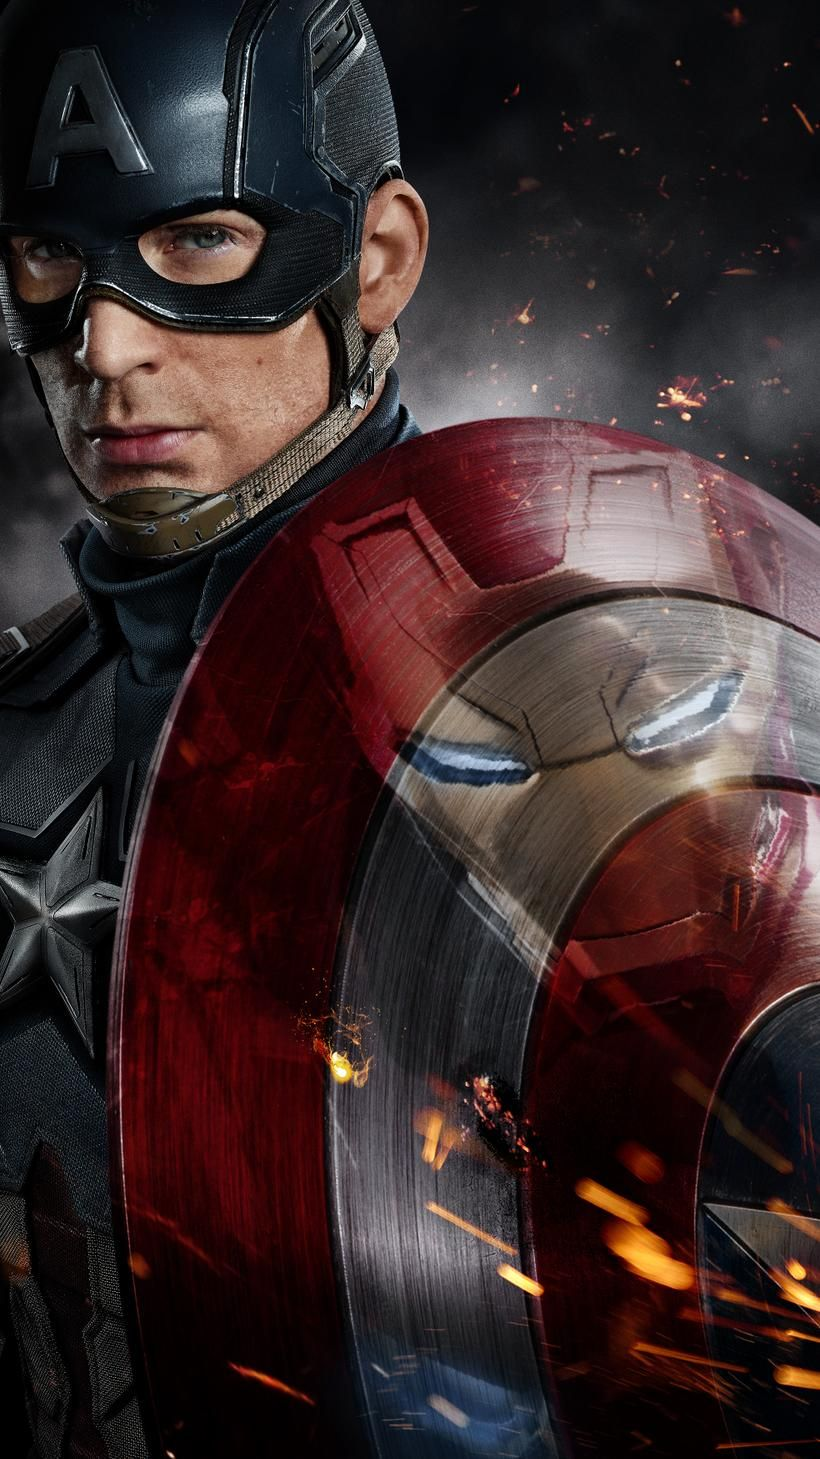 Marvel S Daredevil Phone Wallpapers Moviemania Captain America Wallpaper Iron Man Vs Captain America Captain America Civil War Movie